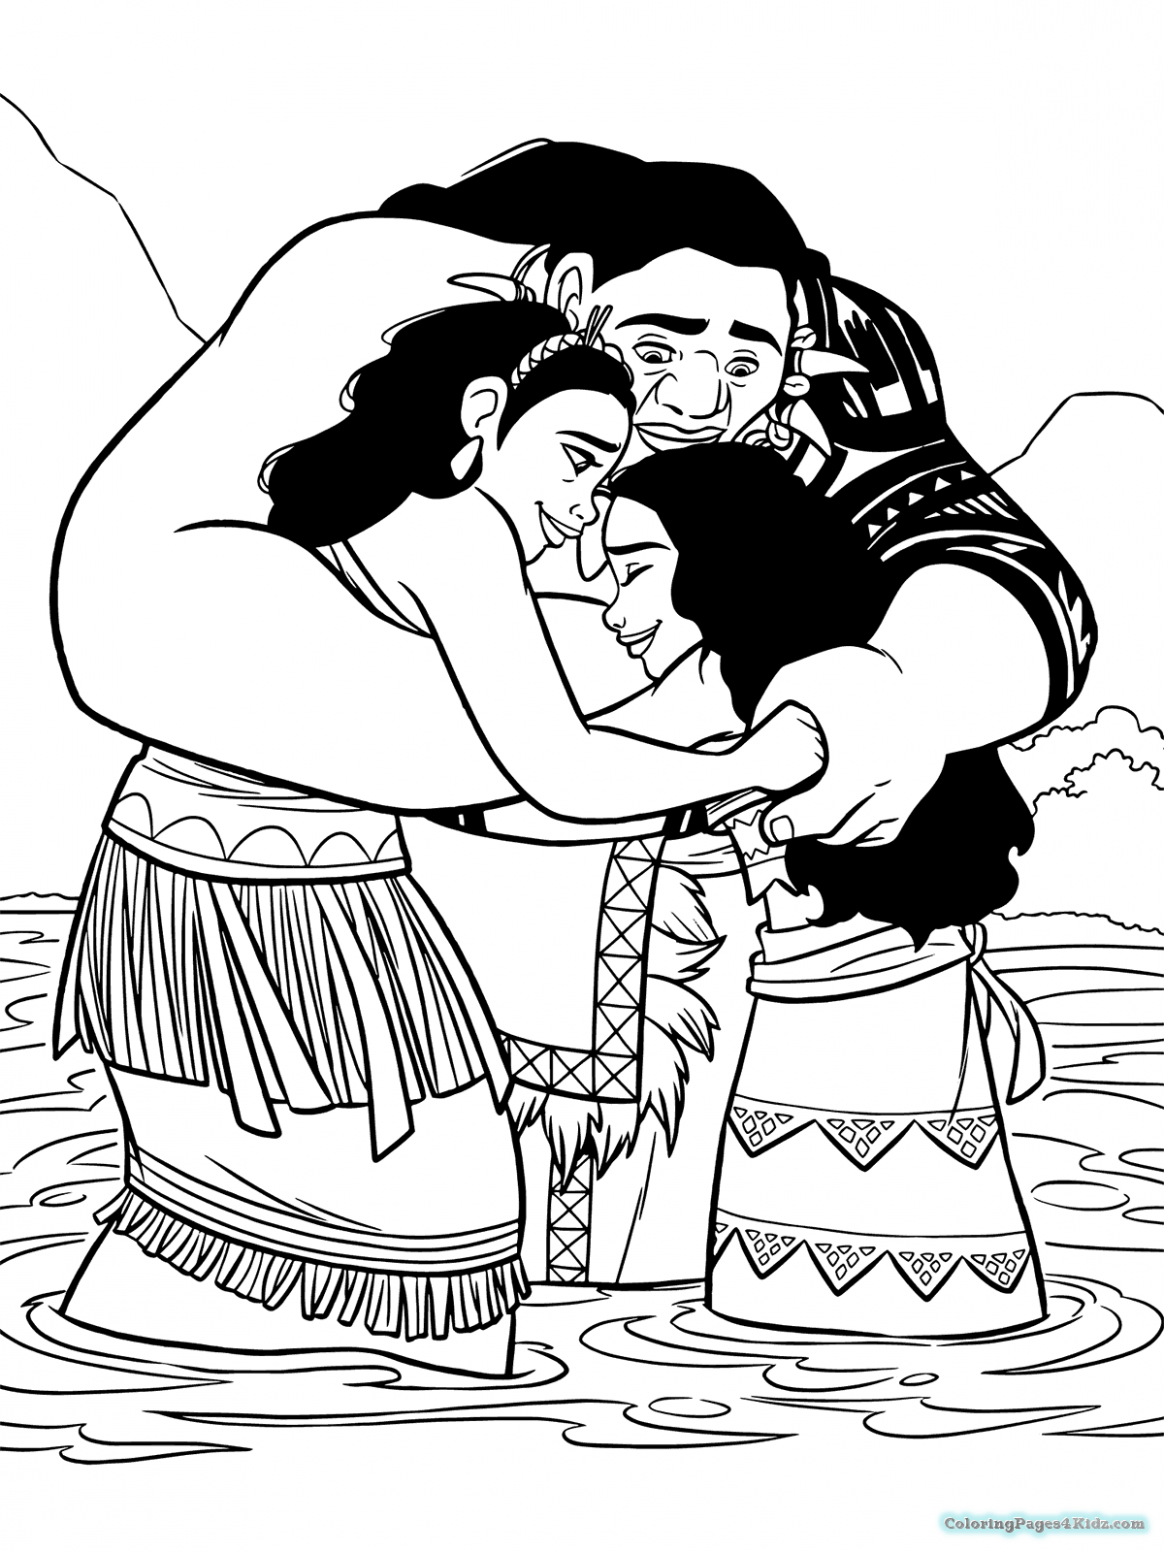 moana coloring pages printable free disney39s moana coloring pages disneyclipscom moana free coloring pages printable